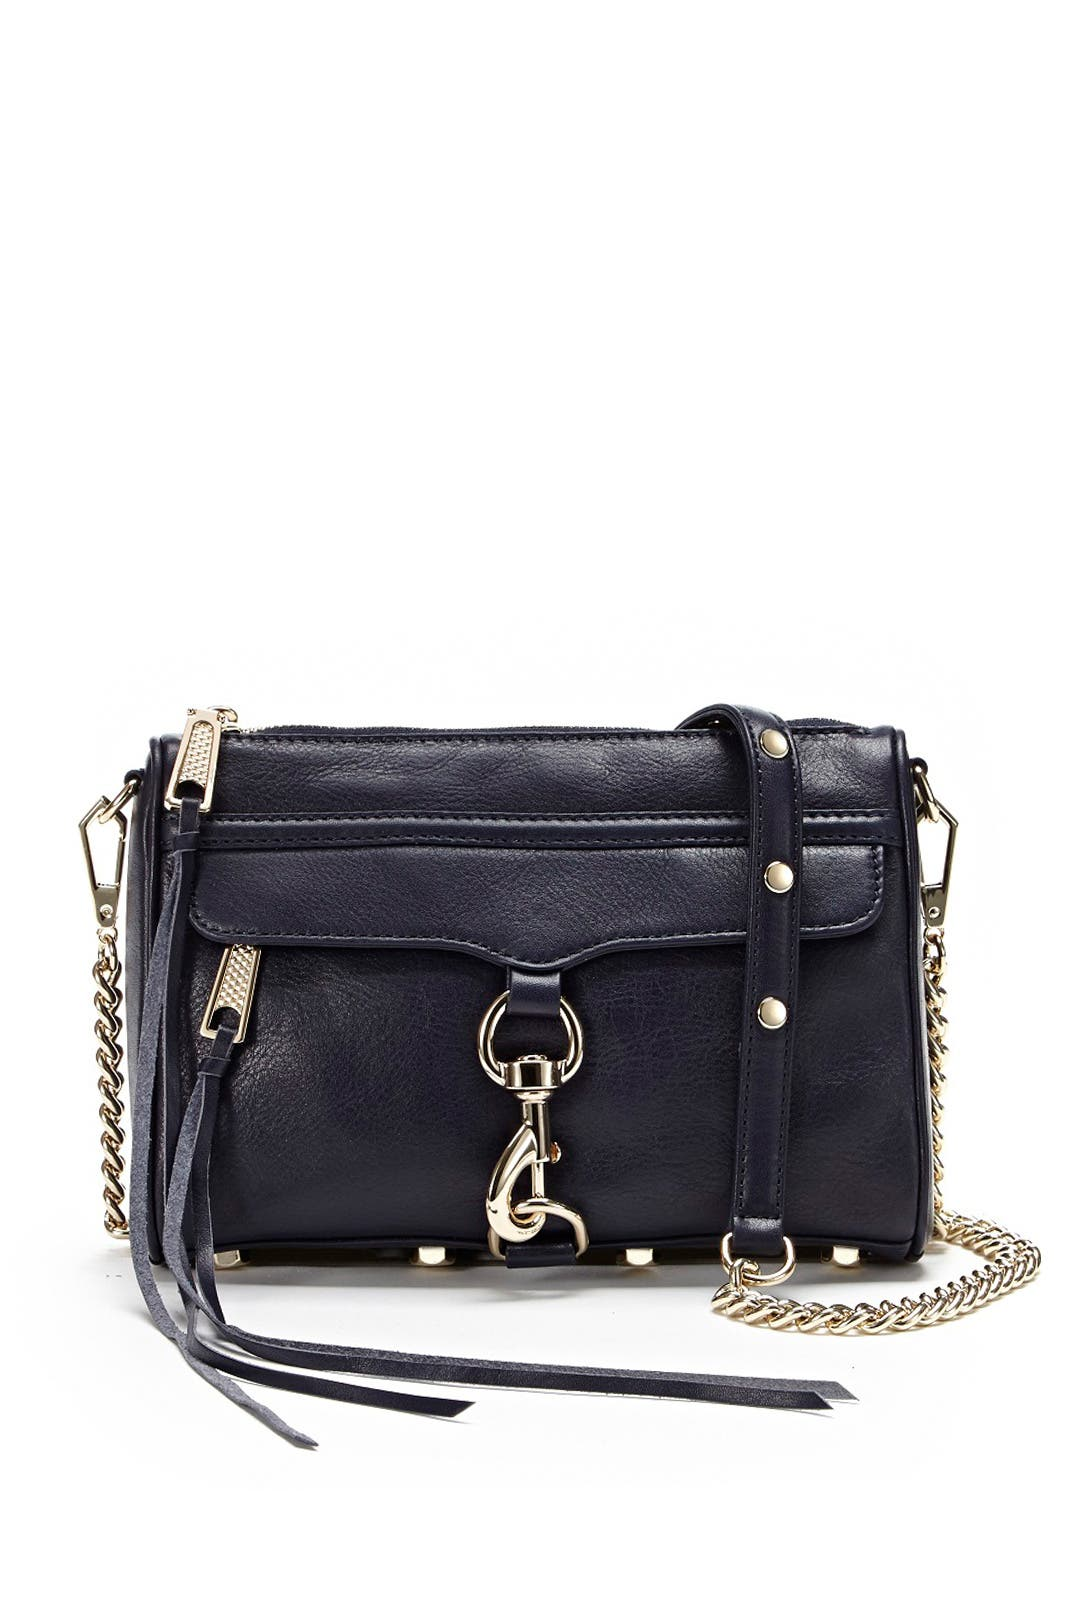 Rebecca Minkoff Mini Mac (Black 3) Cross Body Handbags Te3yI